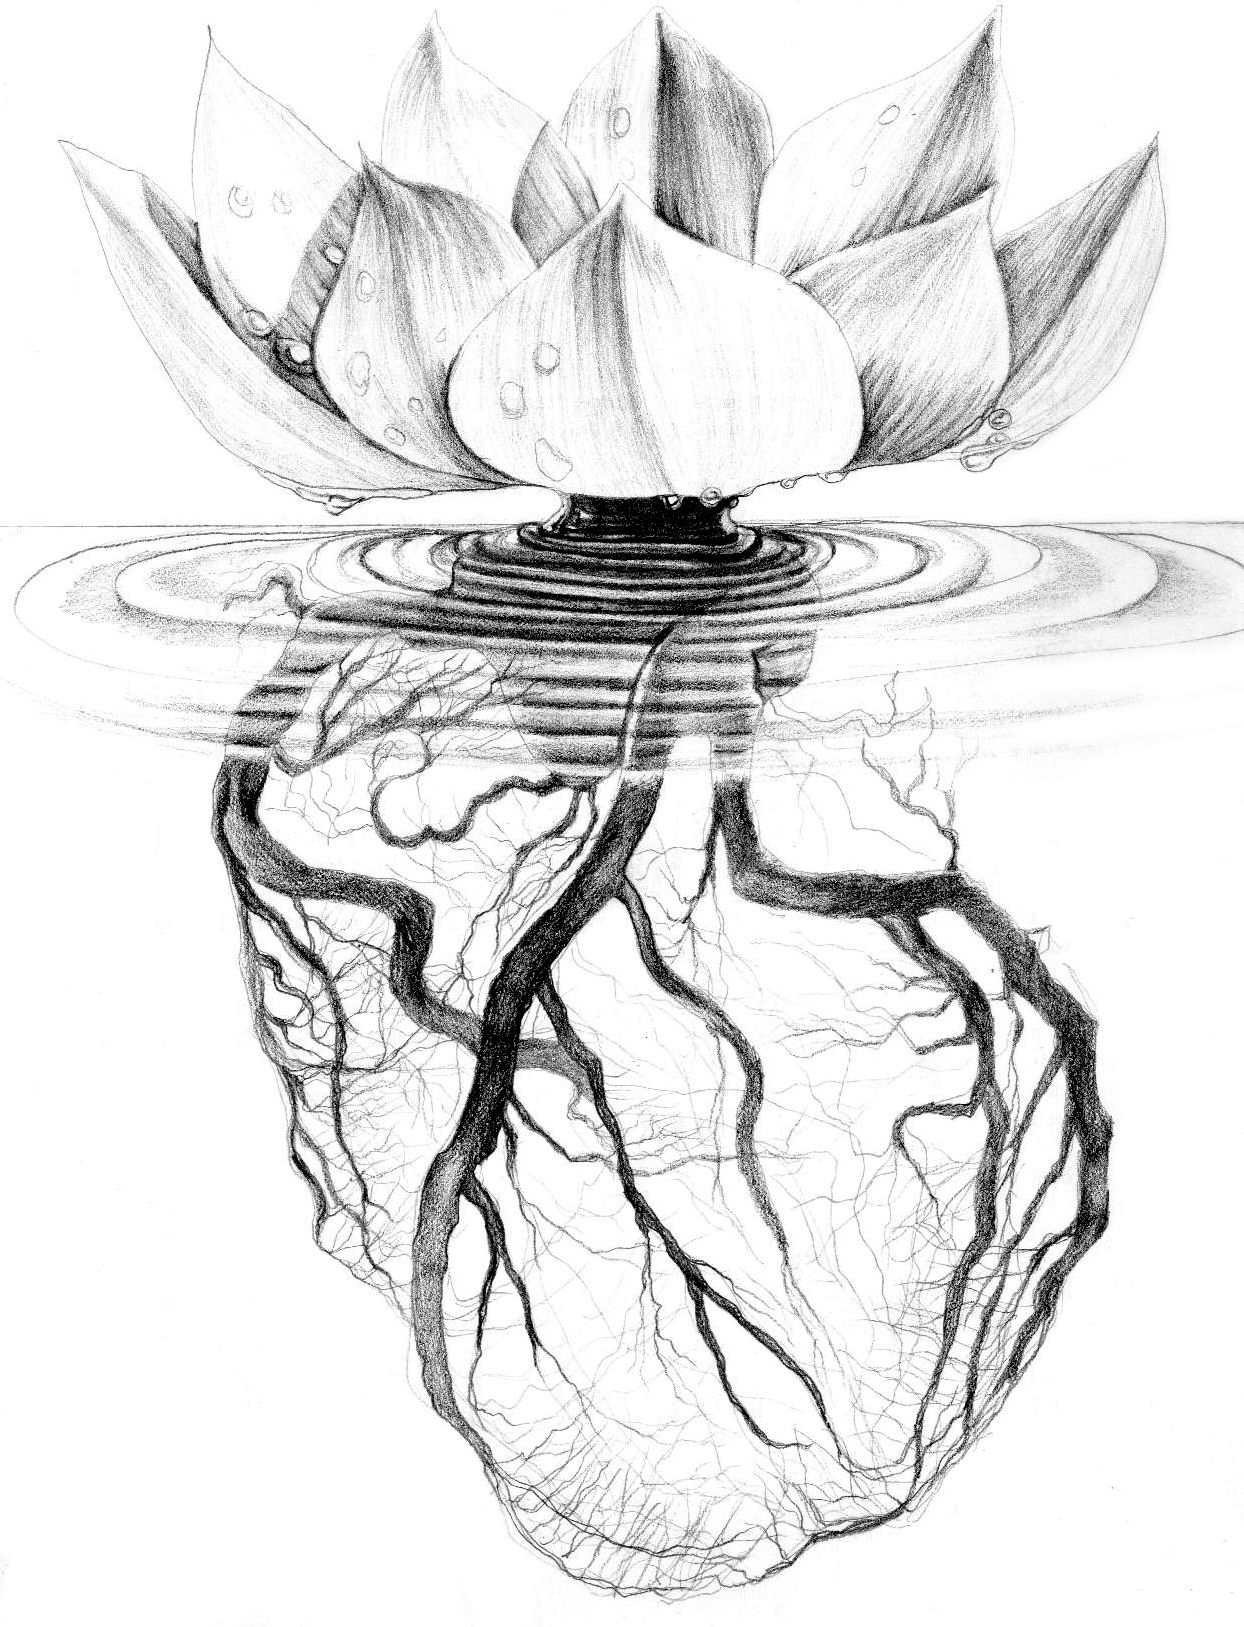 1244x1627 Would Be A Great Tattoo To Represent Infertility Struggles(Lotus